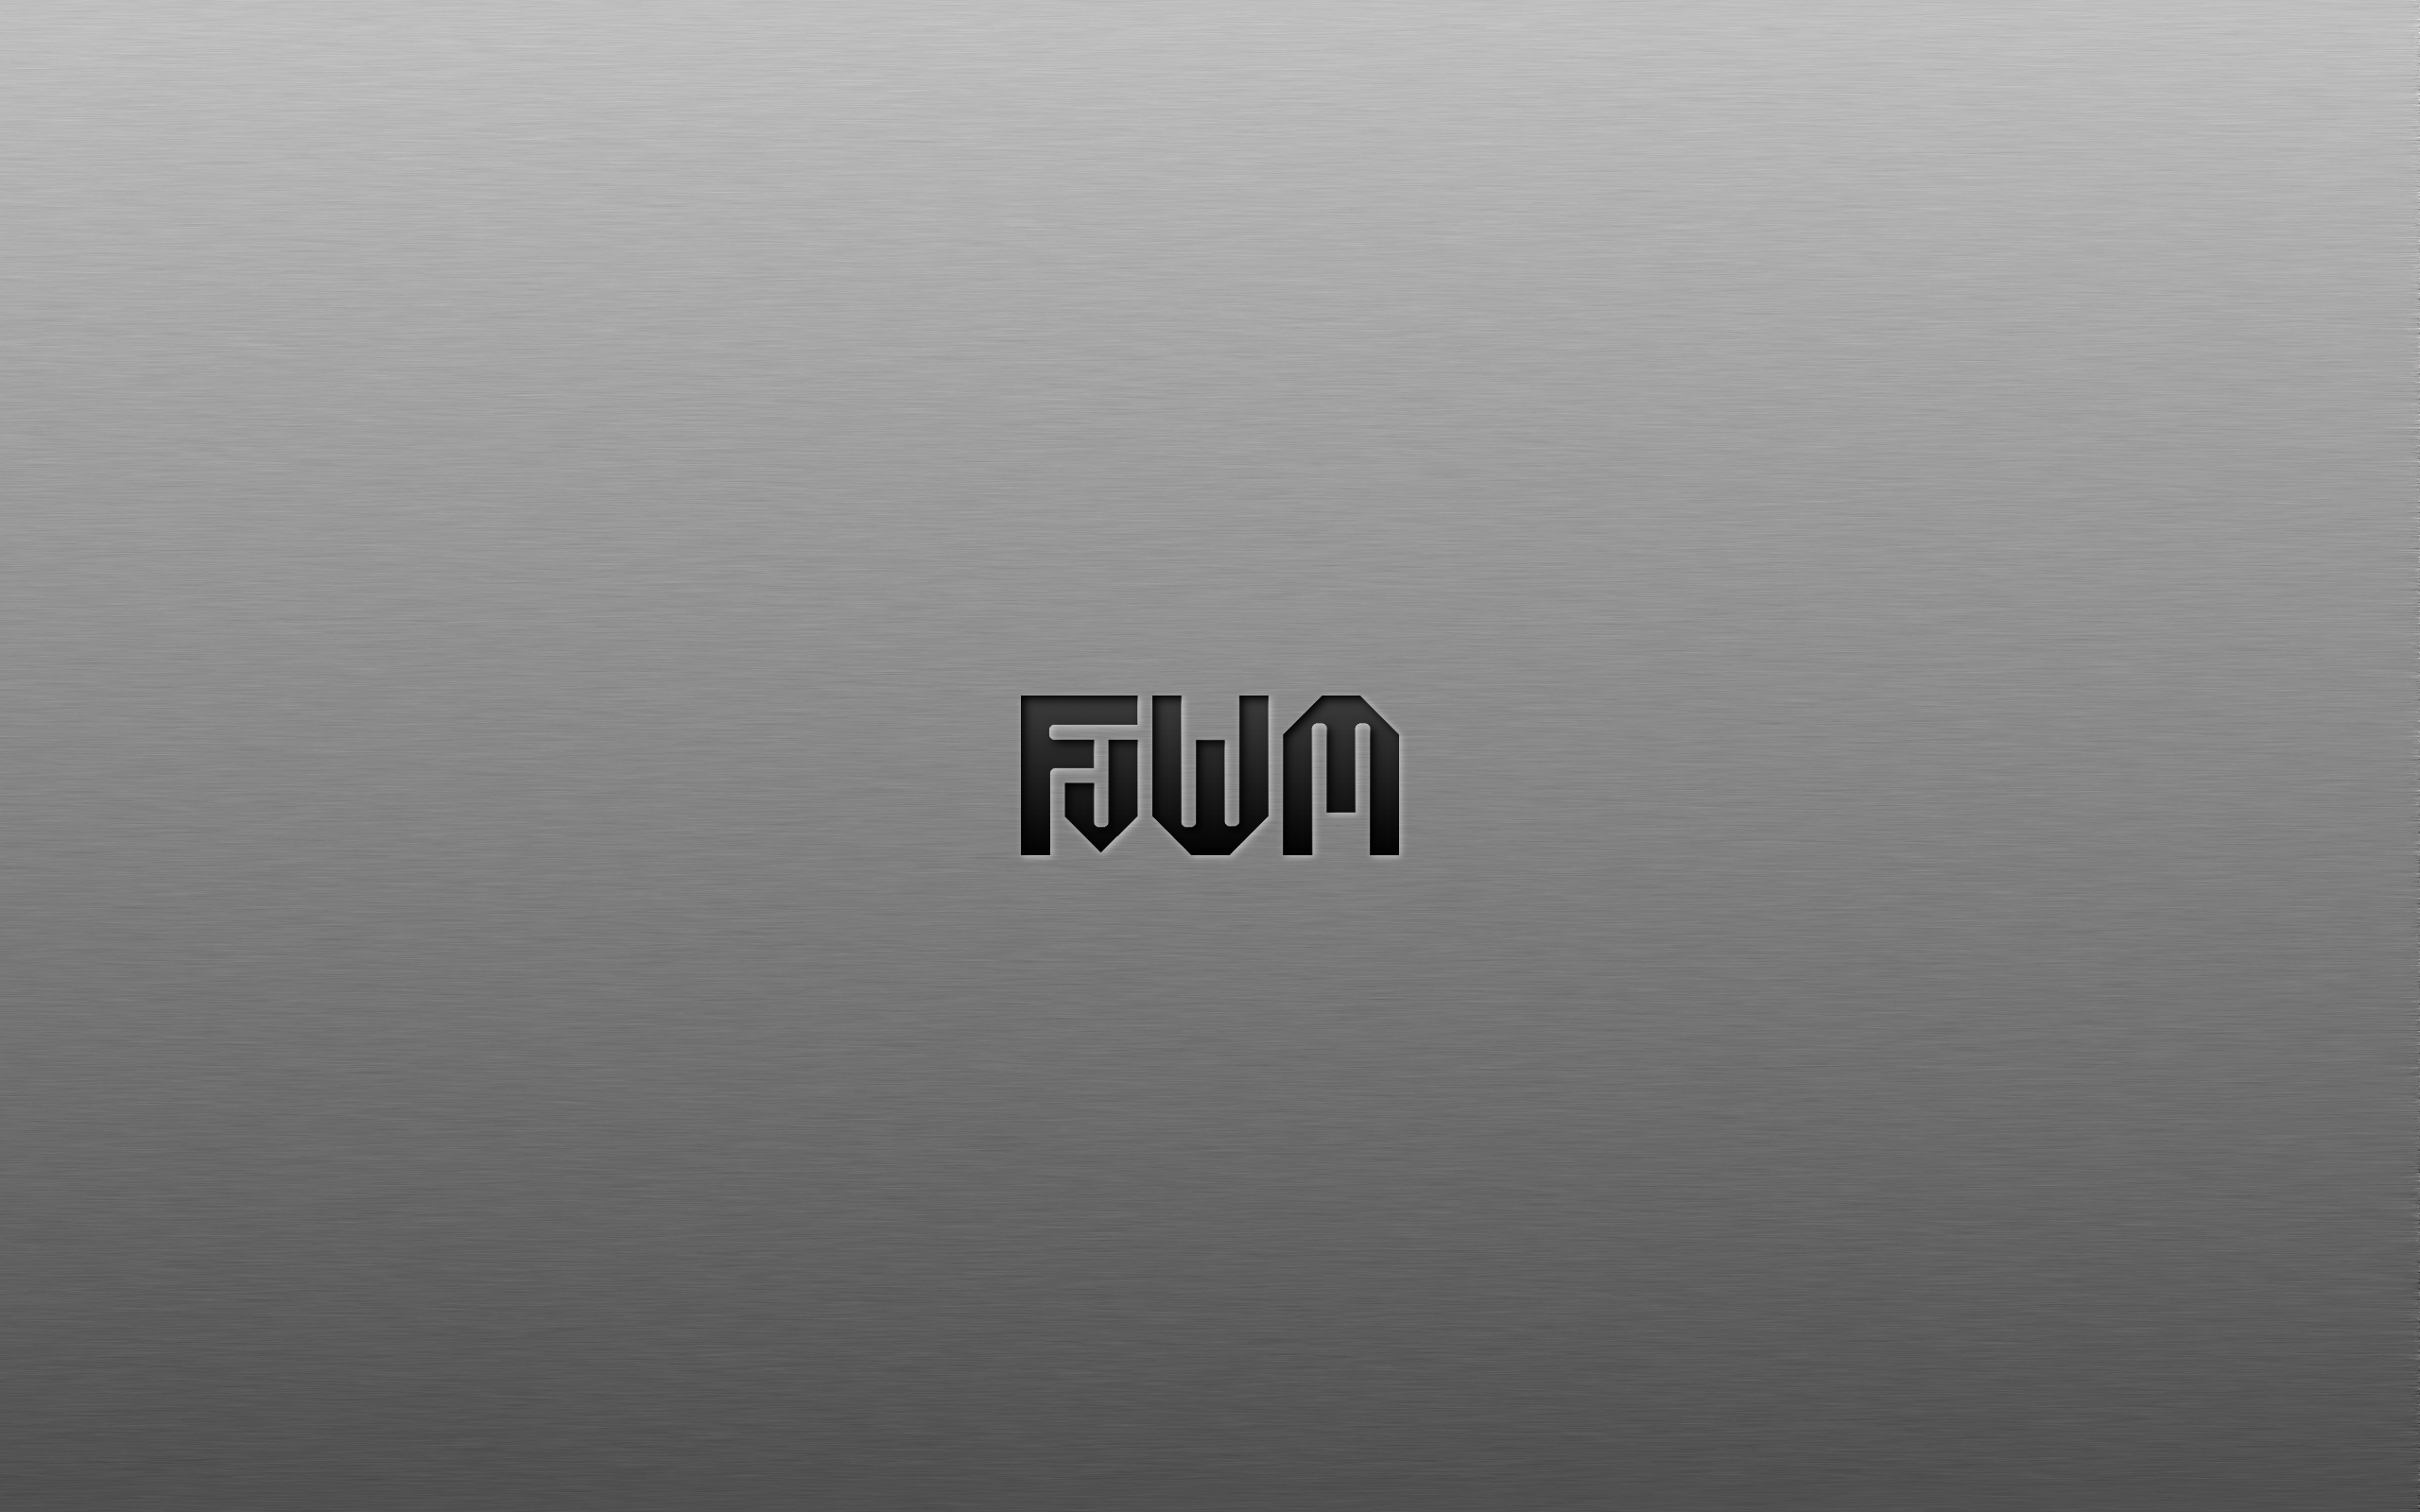 FVWM Wallpaper 004 by PainlessRob